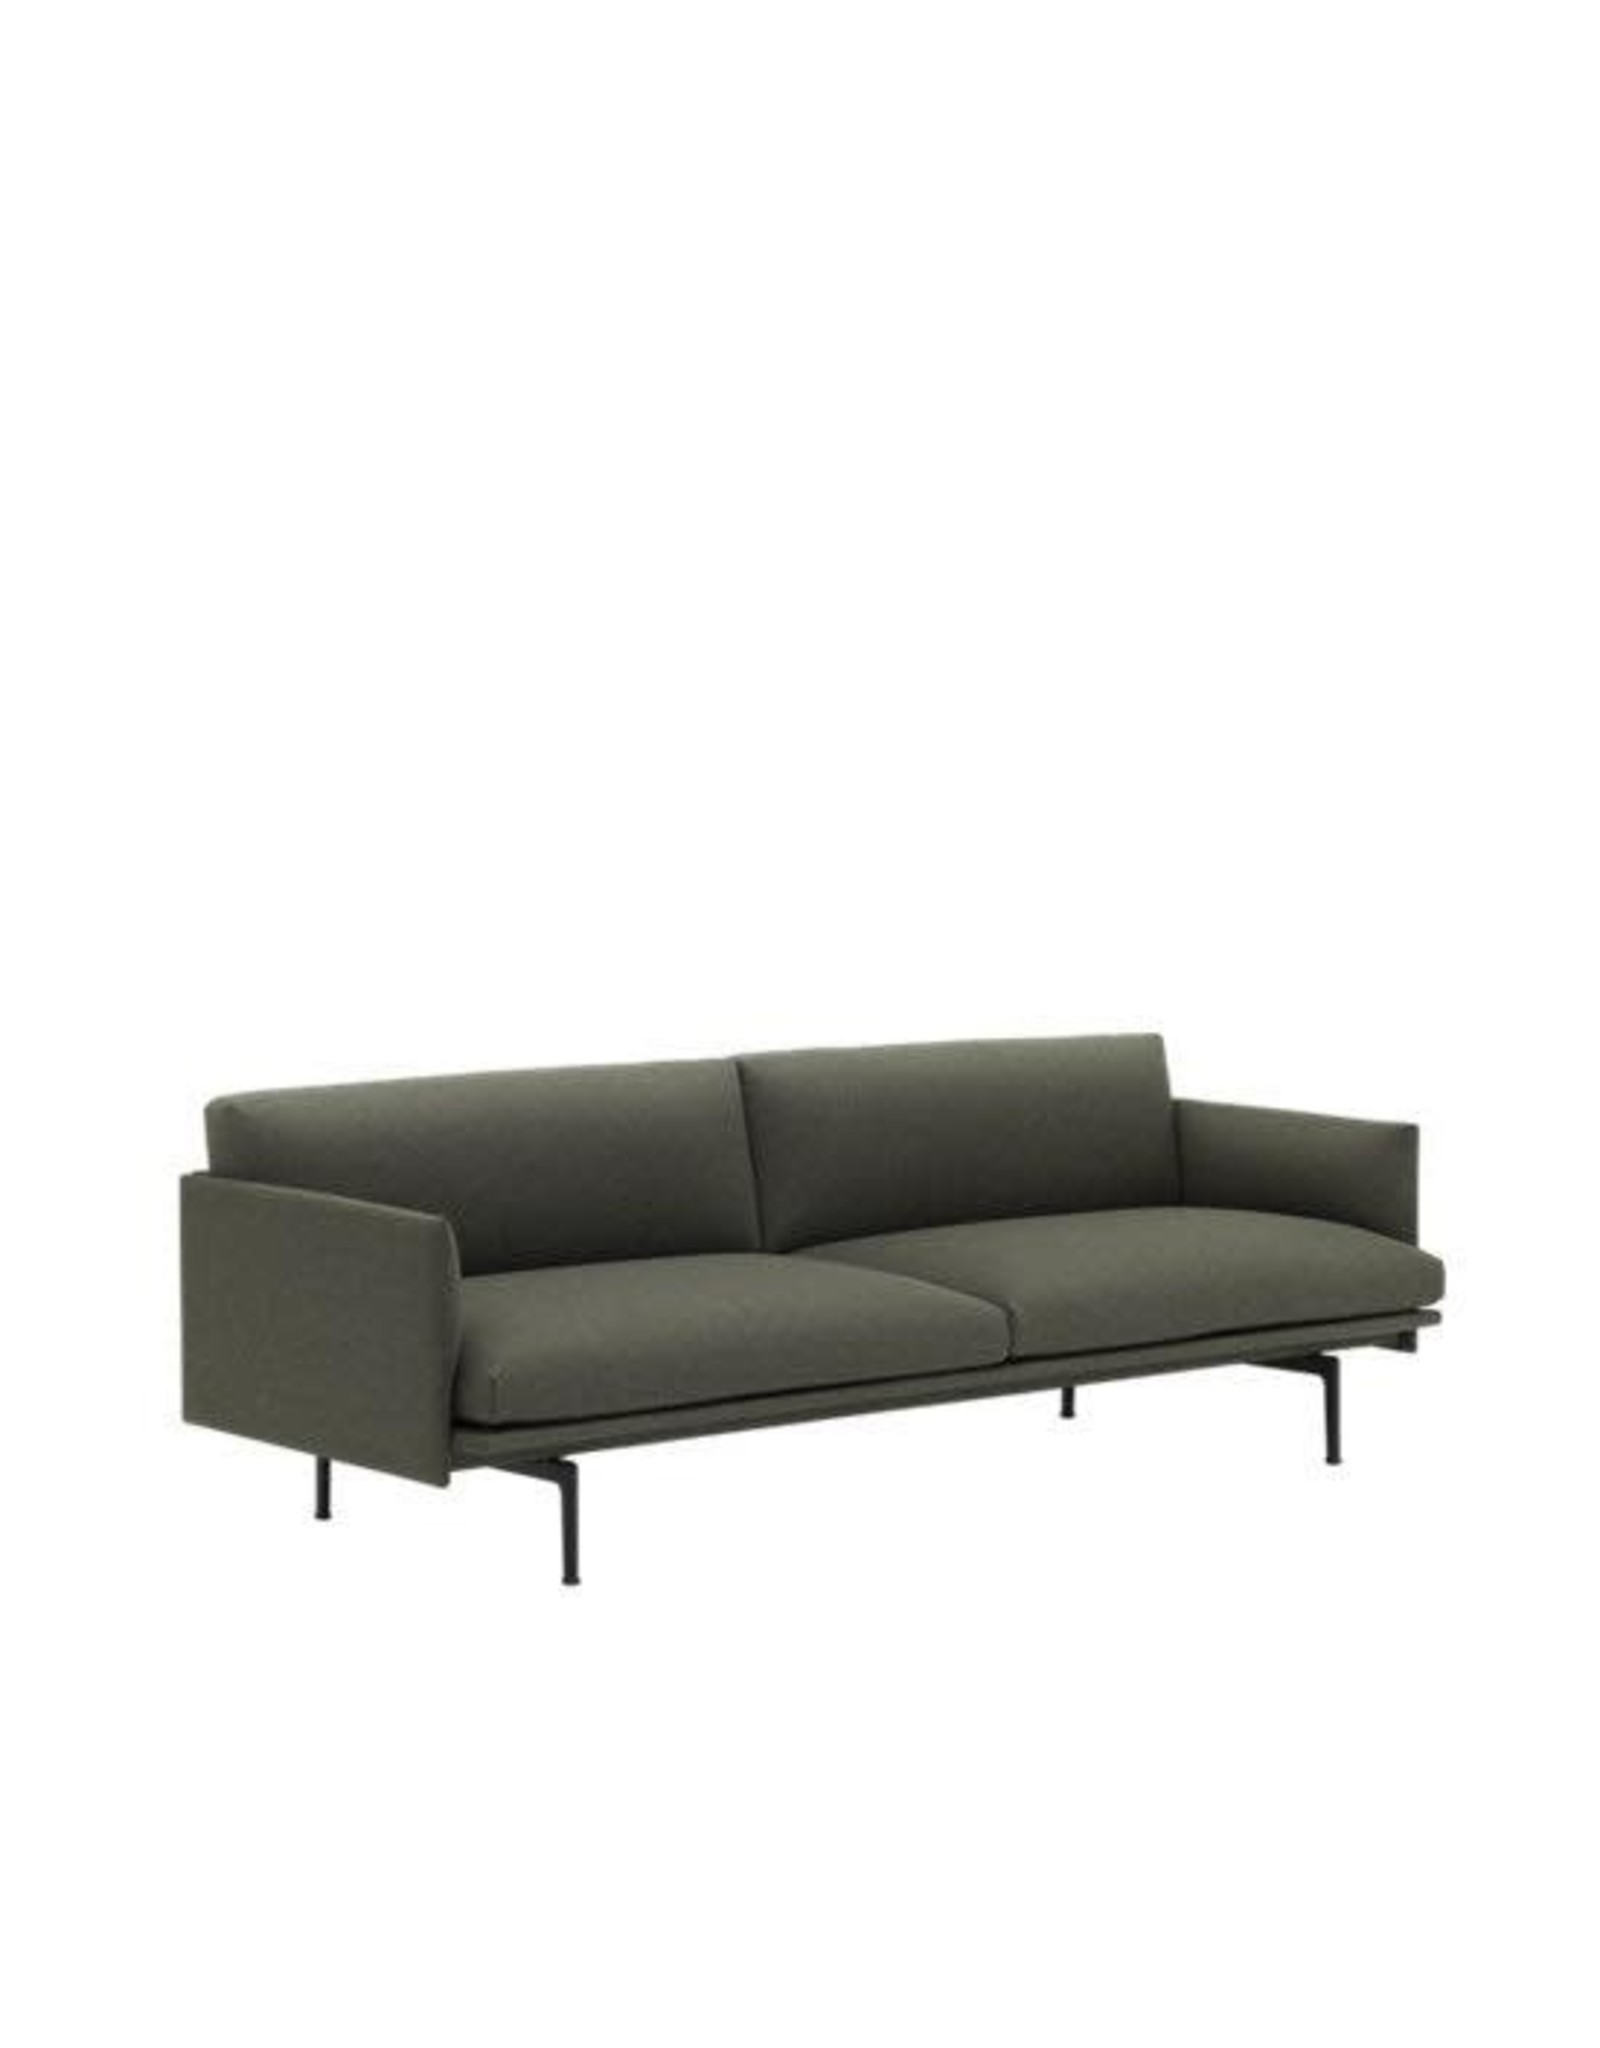 OUTLINE 3-SEATER SOFA